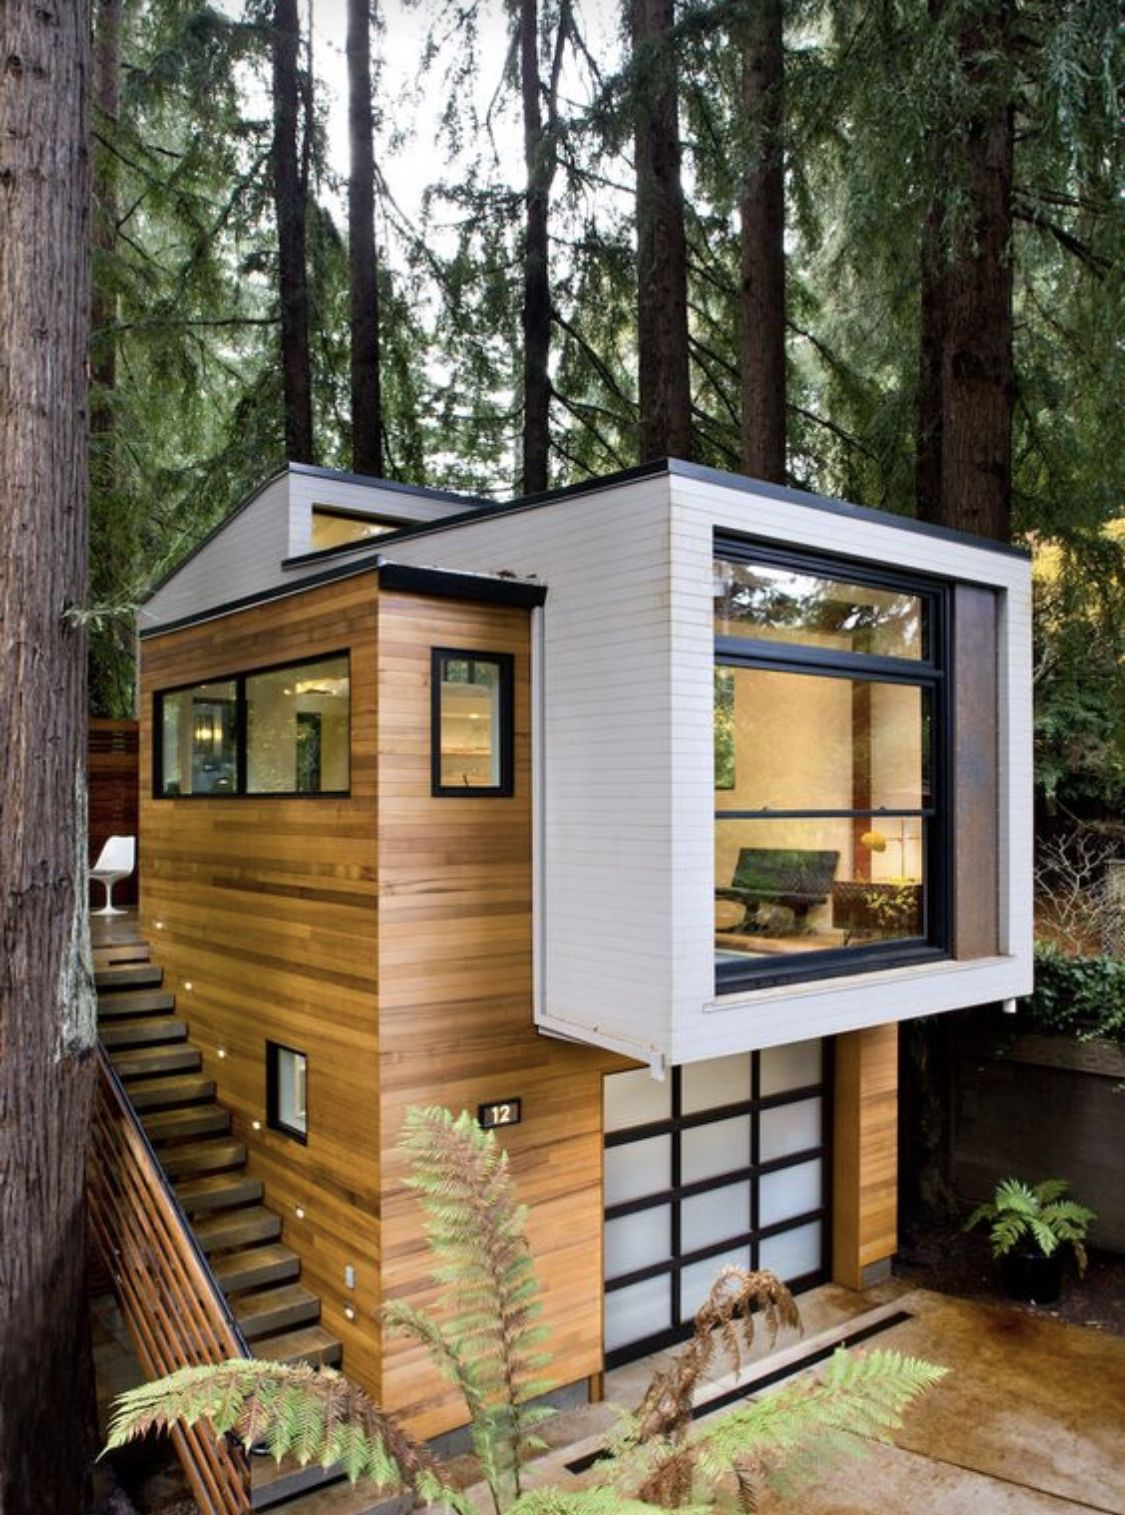 Mesmerizing Window Design For Small House To Be Inspired By: The Elevated Picture Window With Garage Under. In 2020